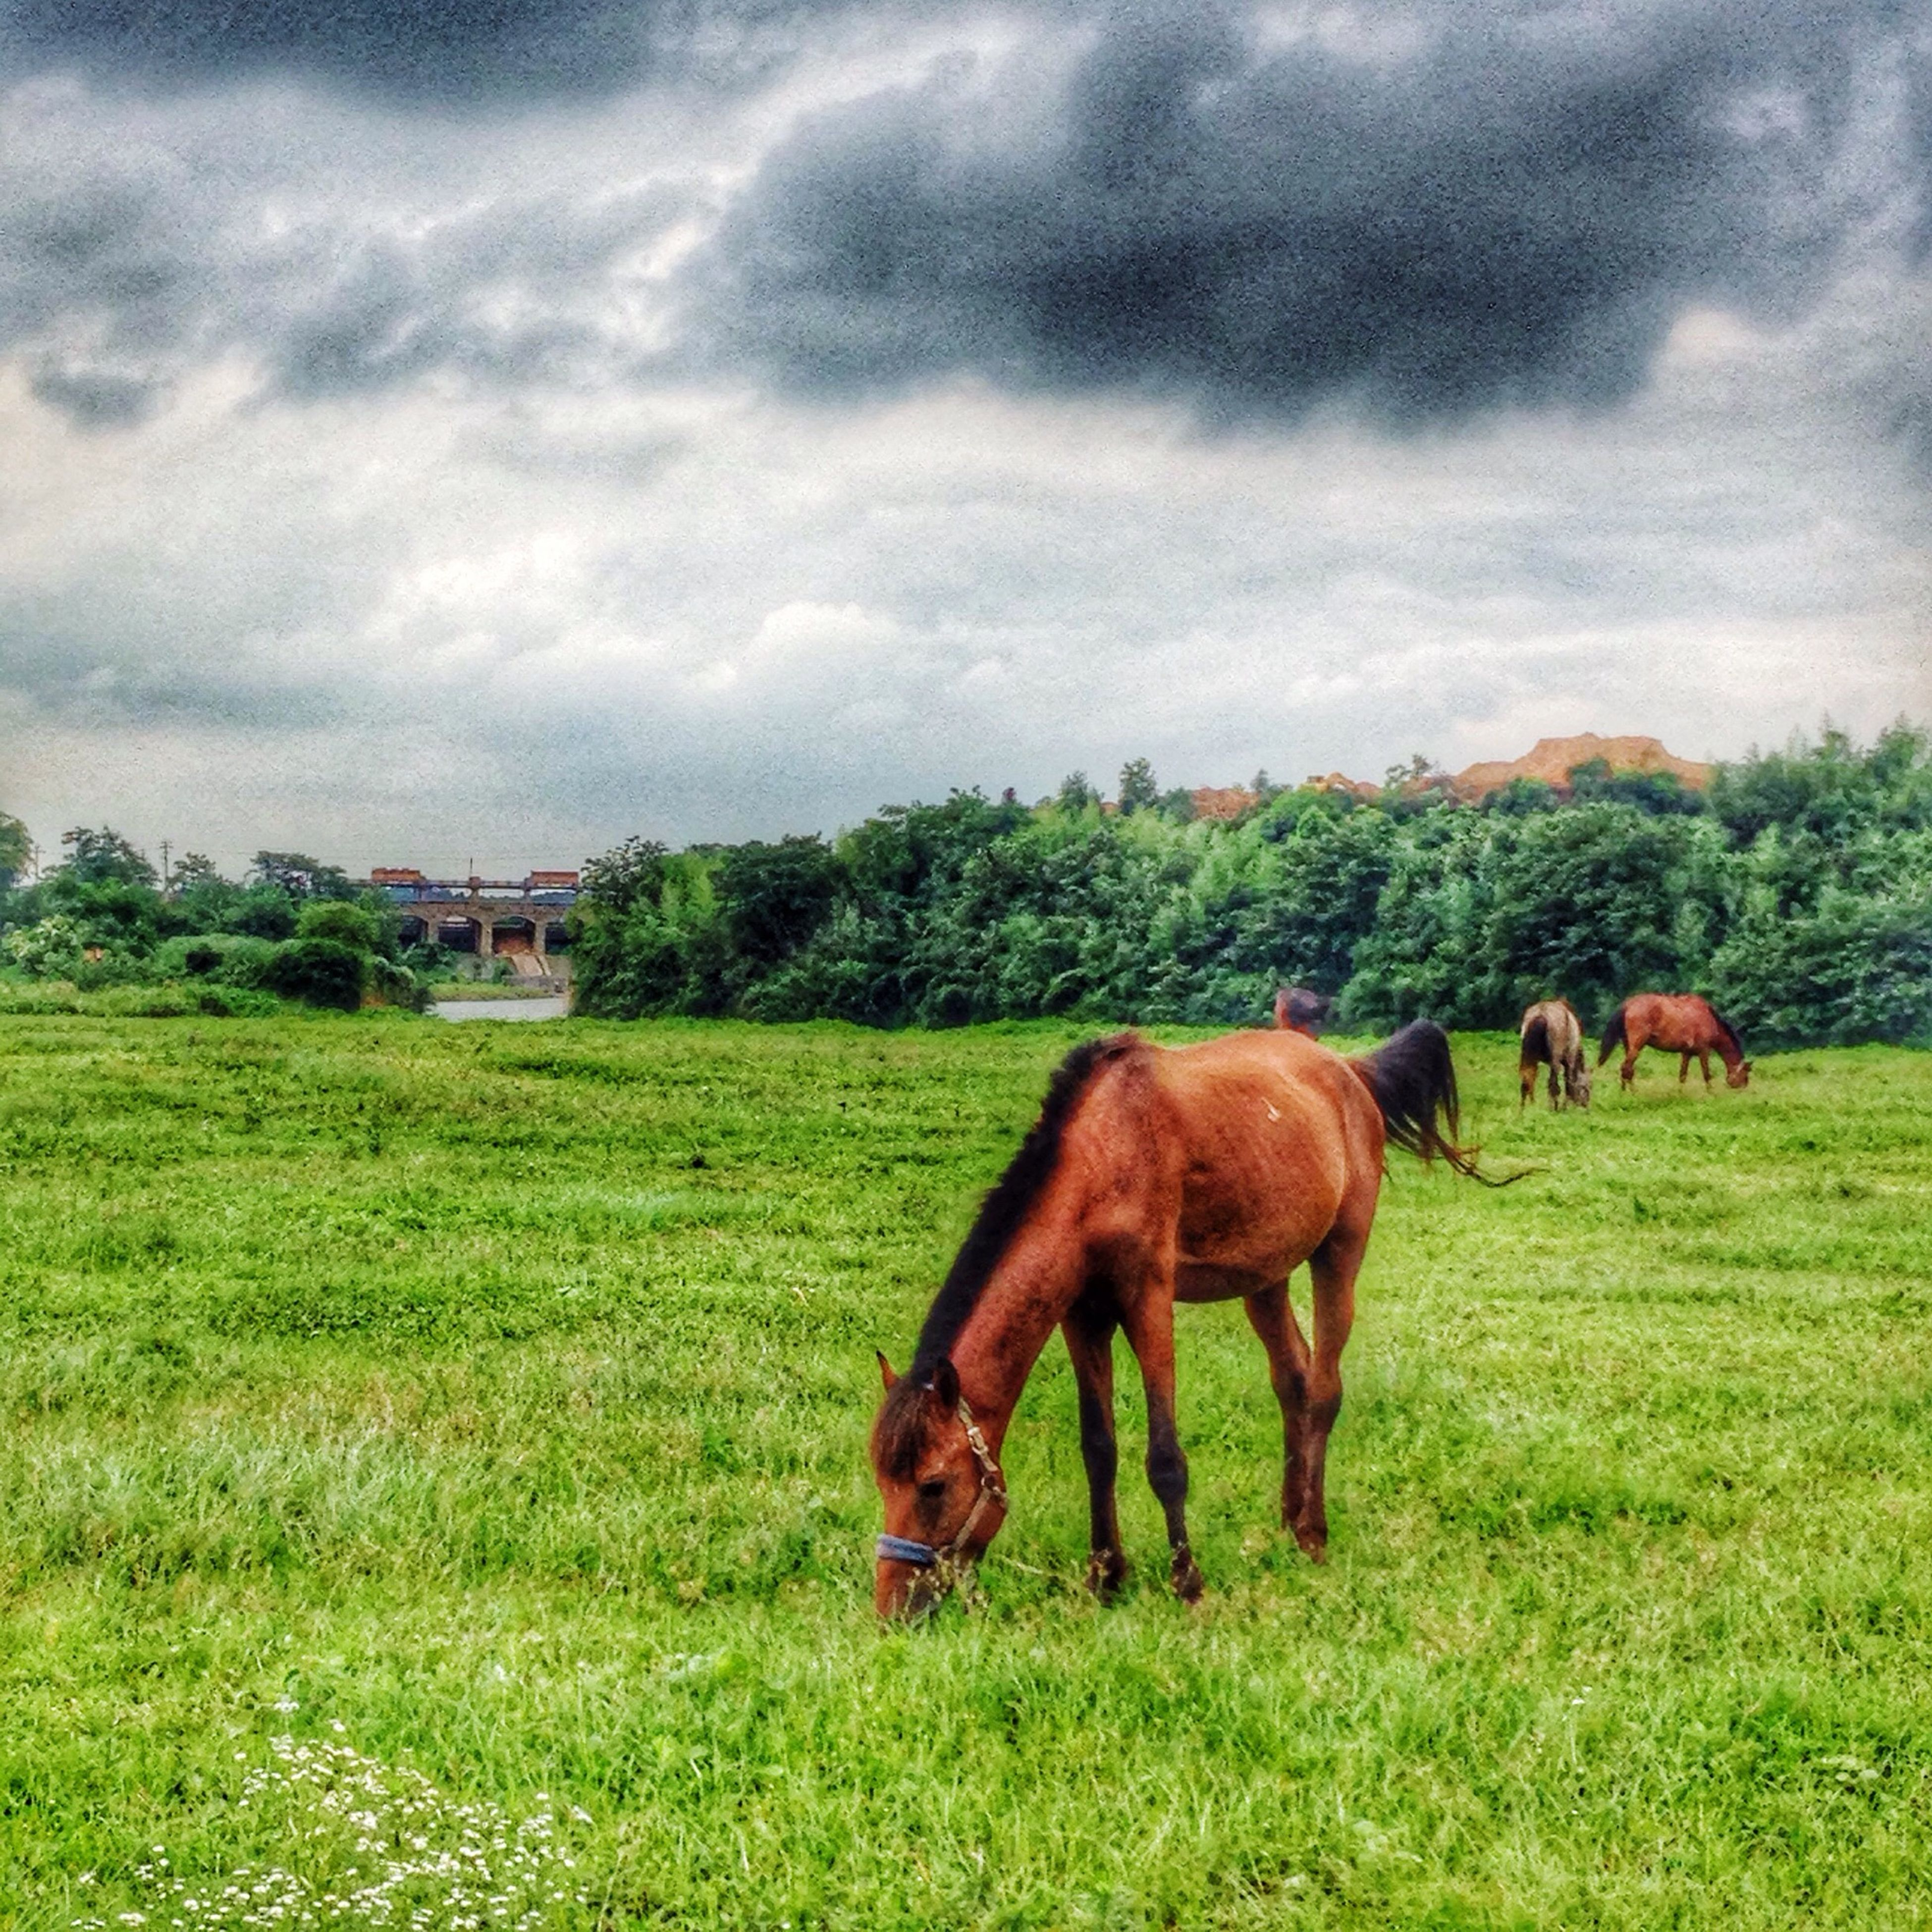 animal themes, grass, domestic animals, field, livestock, mammal, grassy, sky, grazing, green color, horse, landscape, cloud - sky, cow, pasture, cloudy, nature, tree, tranquility, cloud